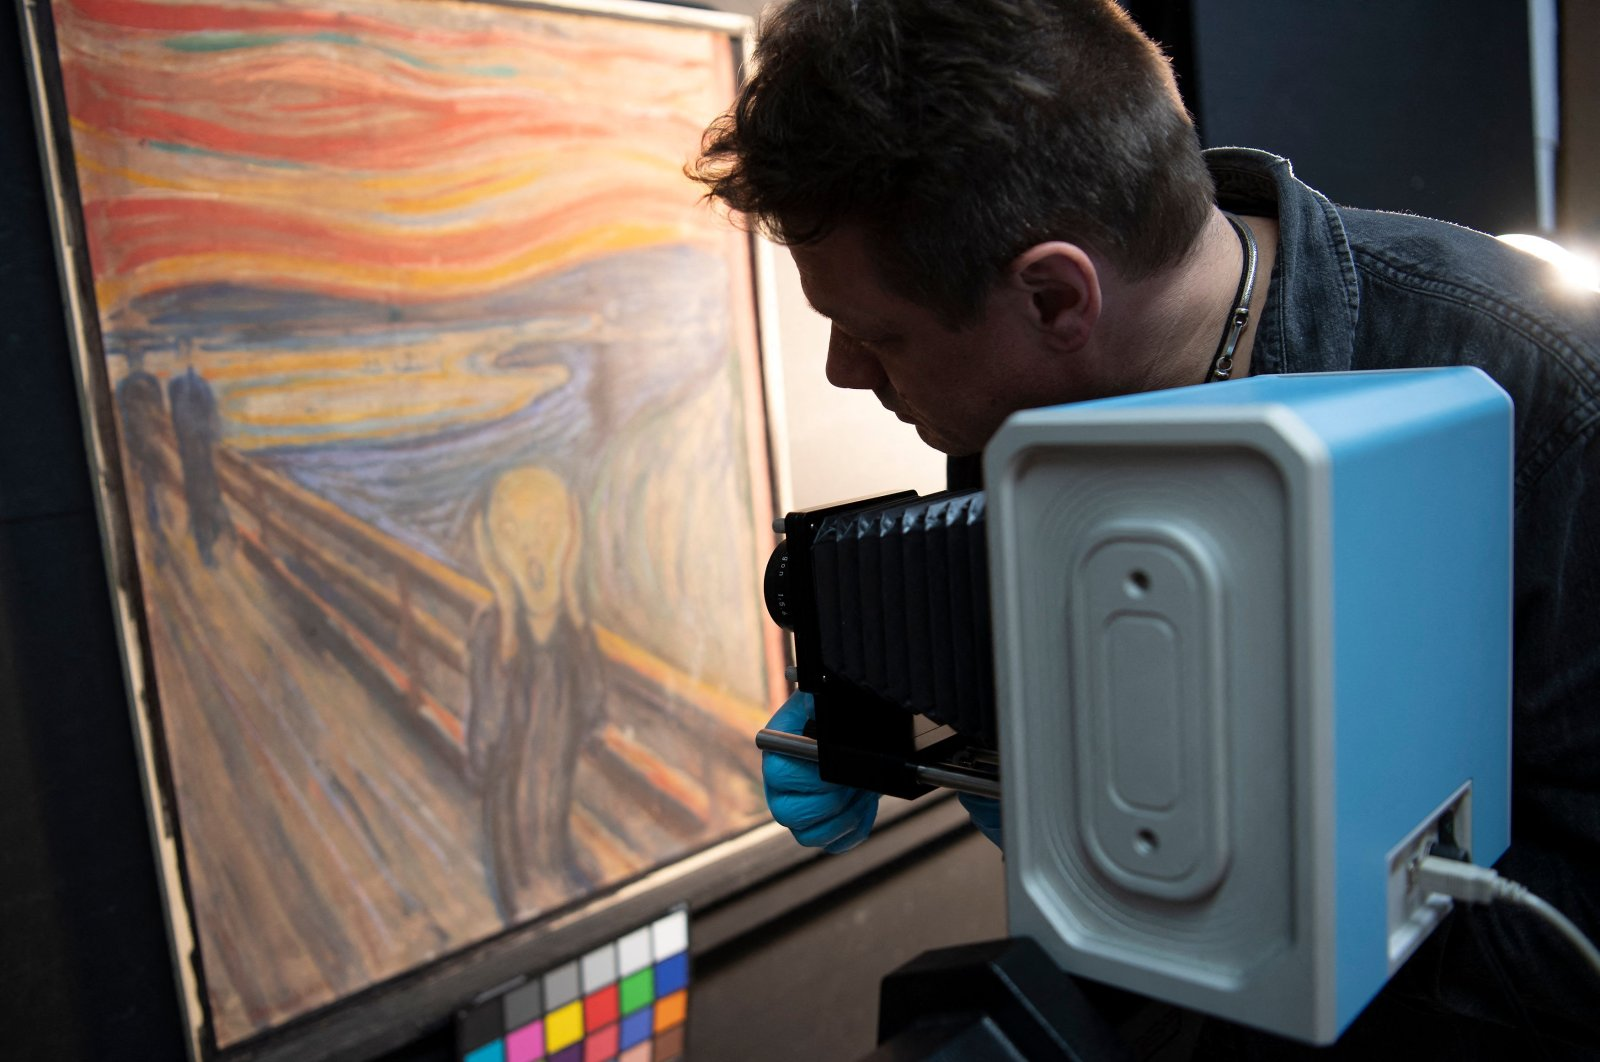 """In this undated handout image, a curator at the National Museum of Norway uses an infrared scanner in the quest to reveal the author of hidden graffiti on Edvard Munch's original painting of """"The Scream"""" in Oslo. (AFP PHOTO)"""